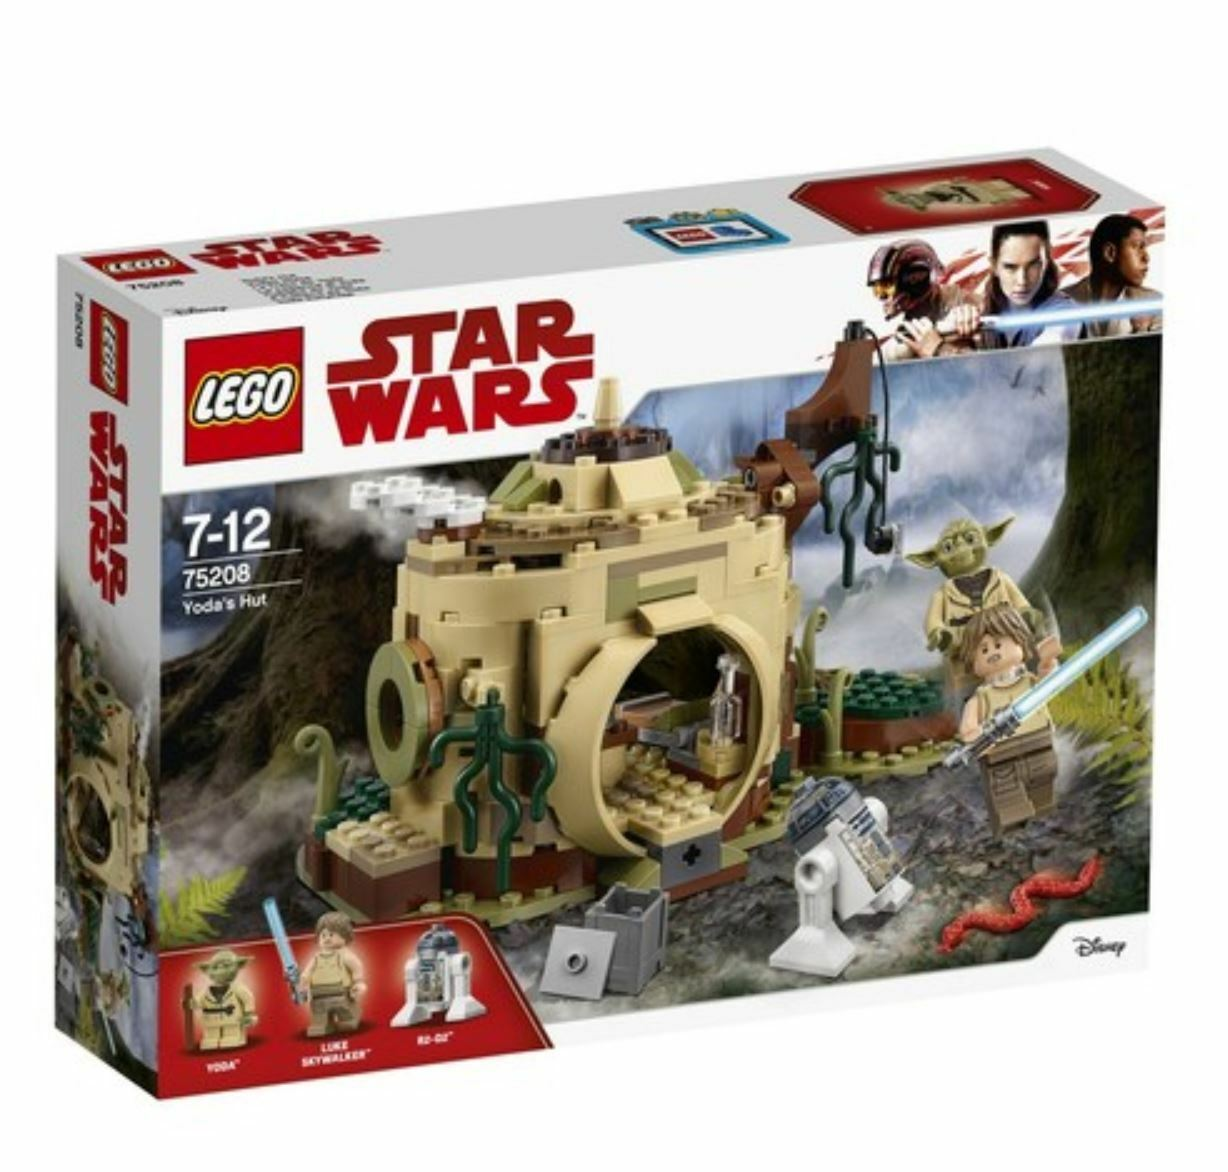 STARWARS Yoda's Hut 75208 2018 Version Free Shipping